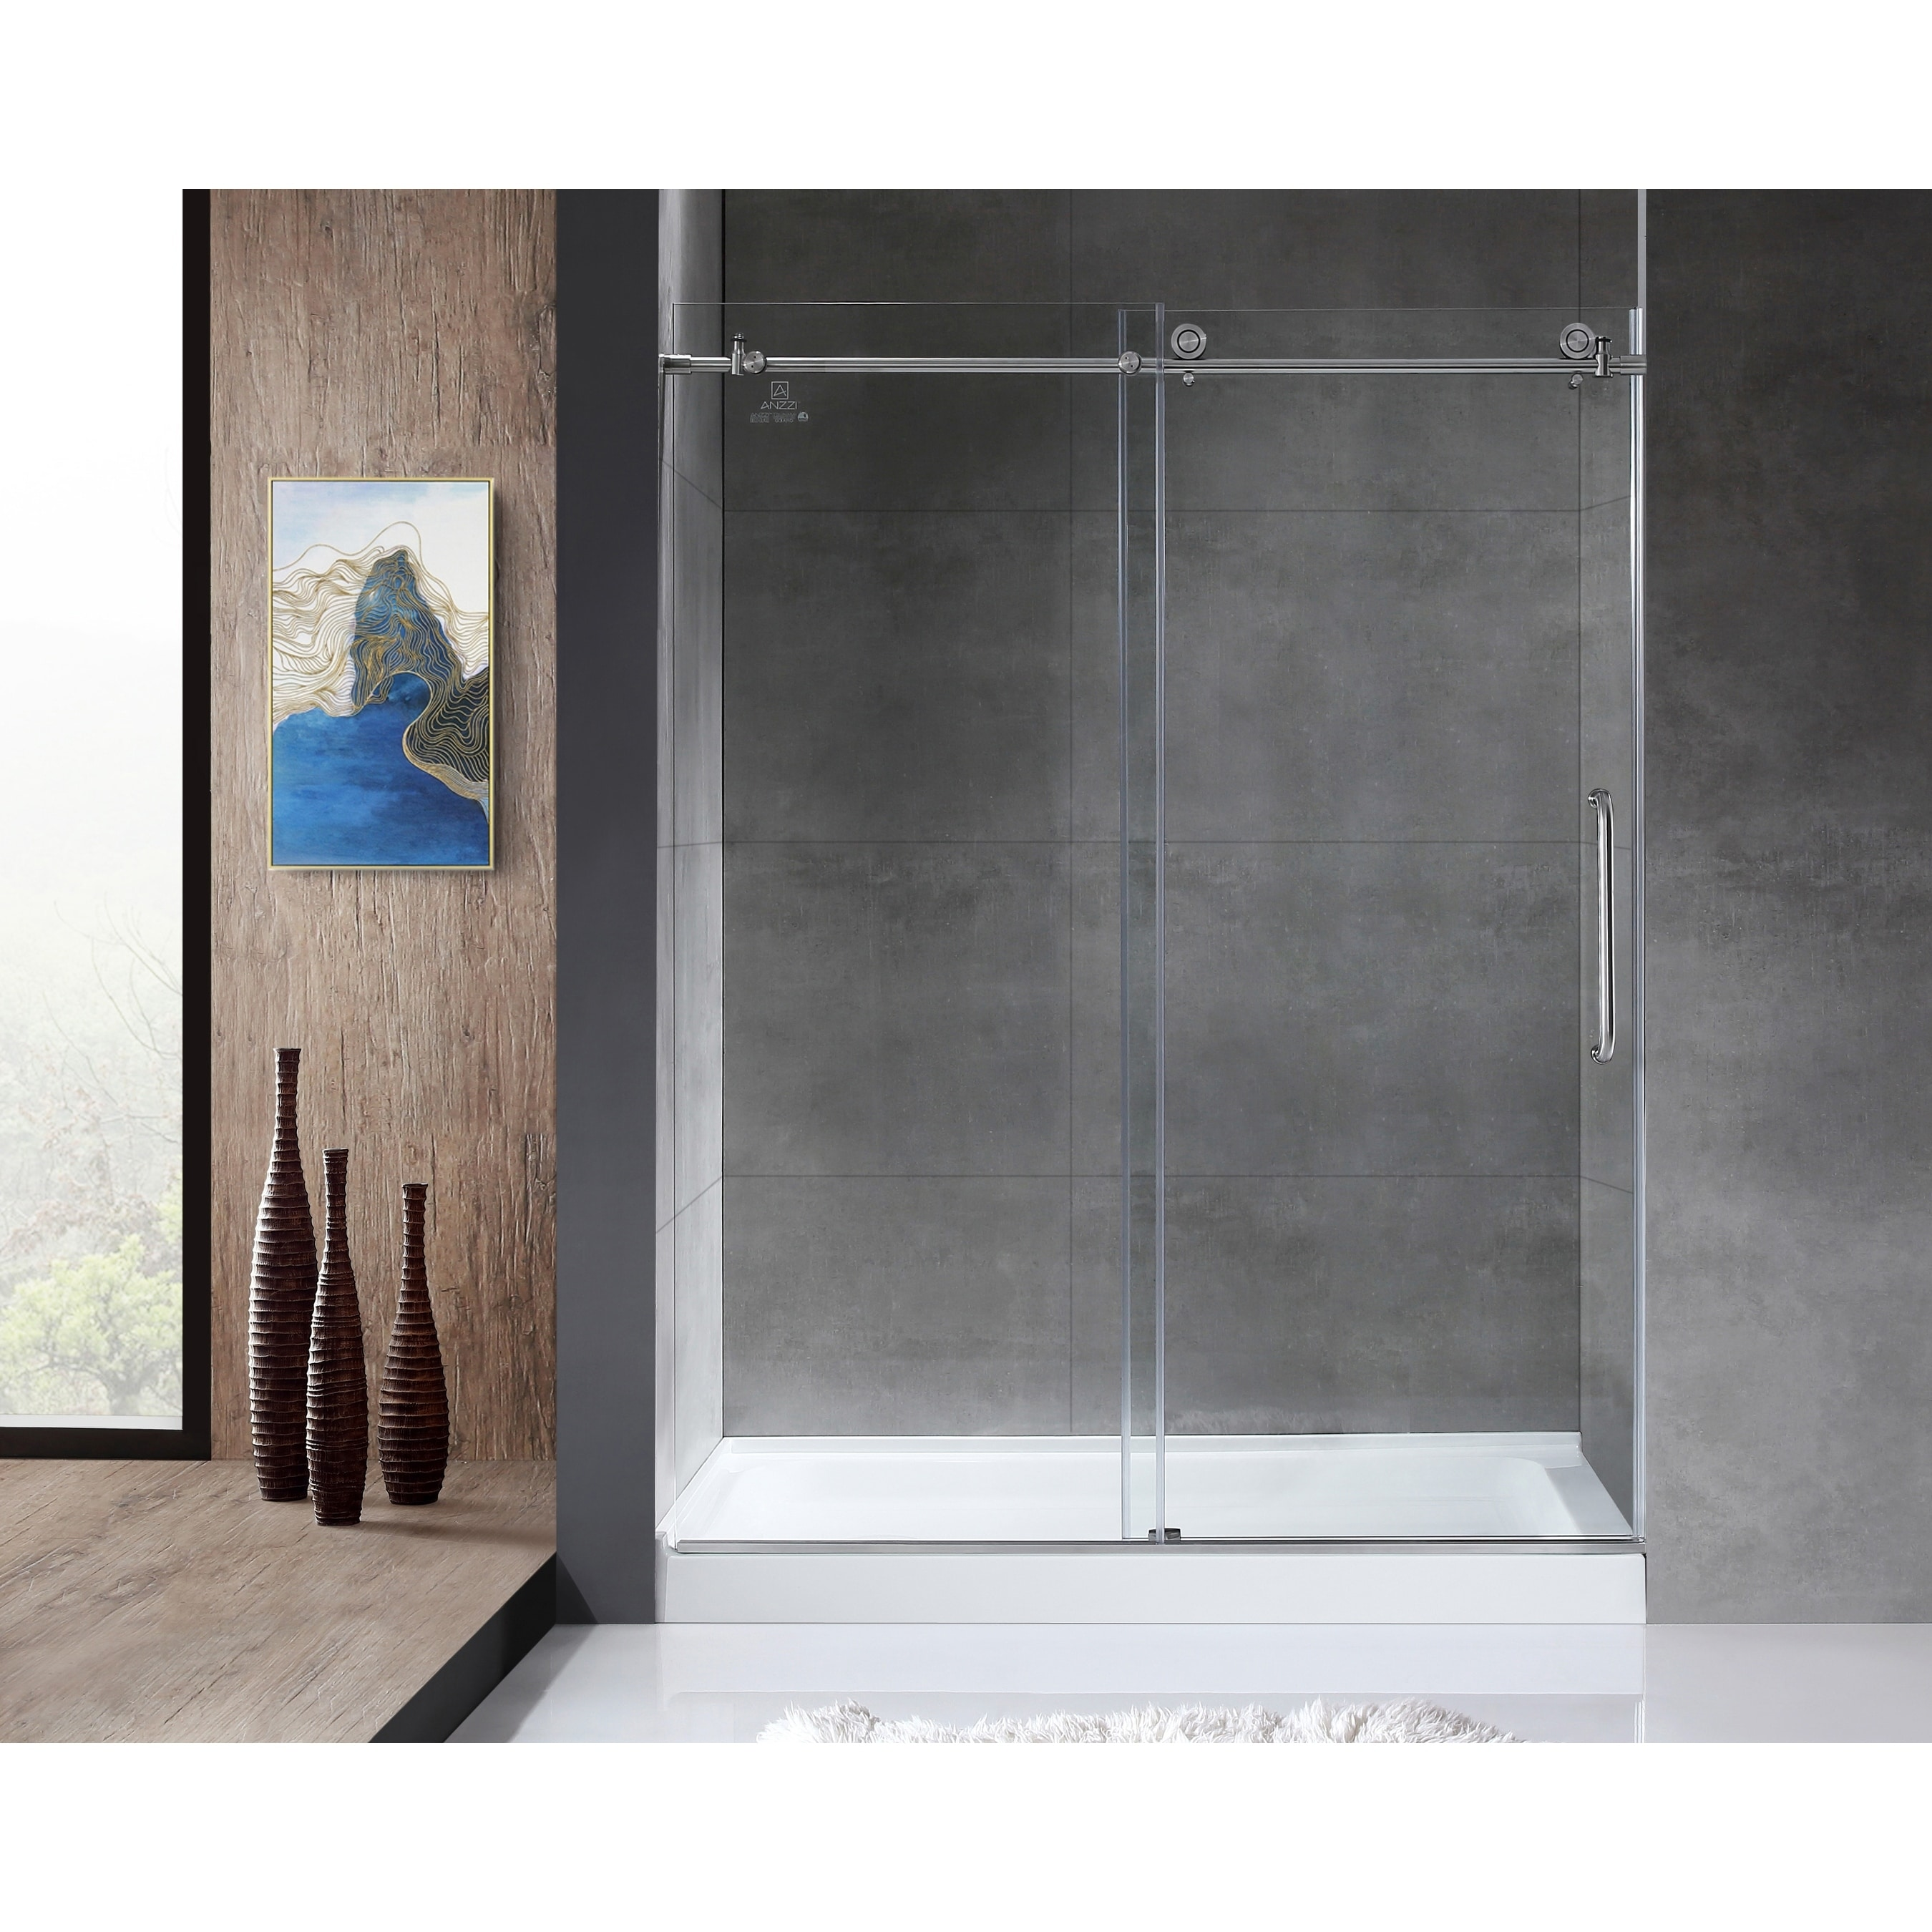 Anzzi Madam 48 X 76 Frameless Sliding Shower Door In Brushed Nickel